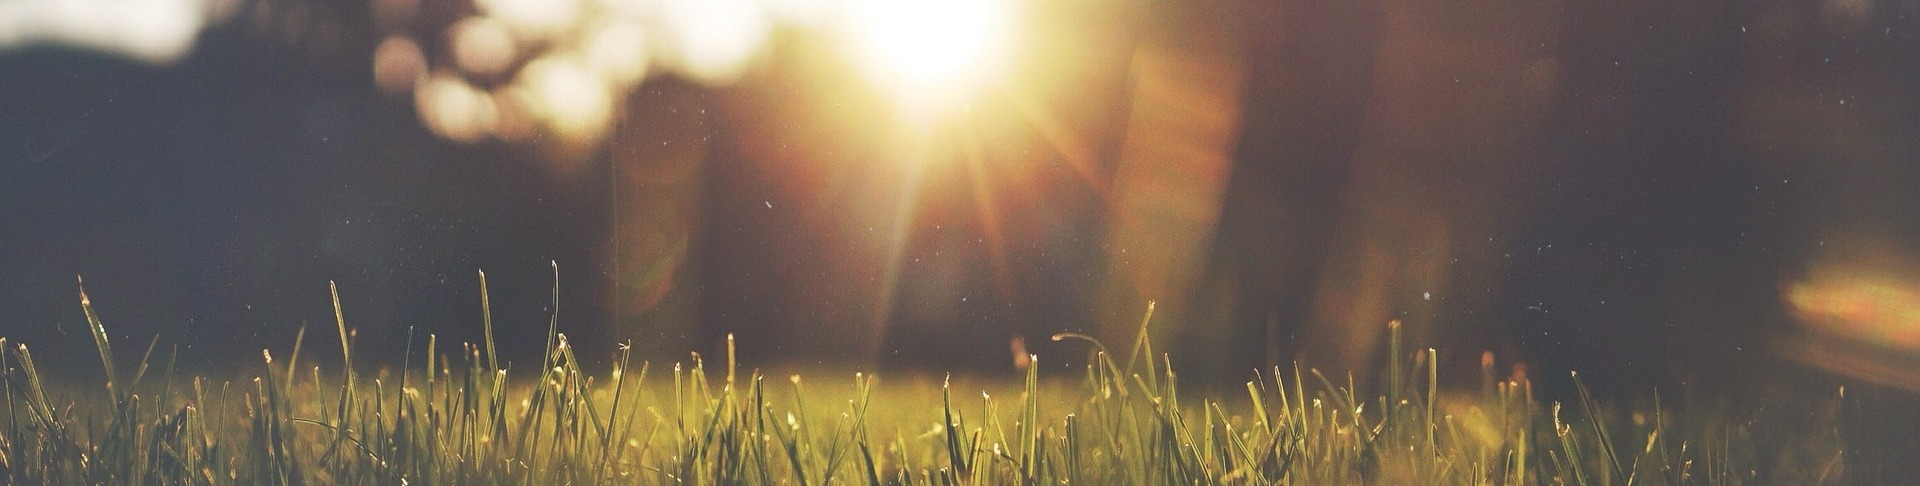 Afternoon sunshine over grass